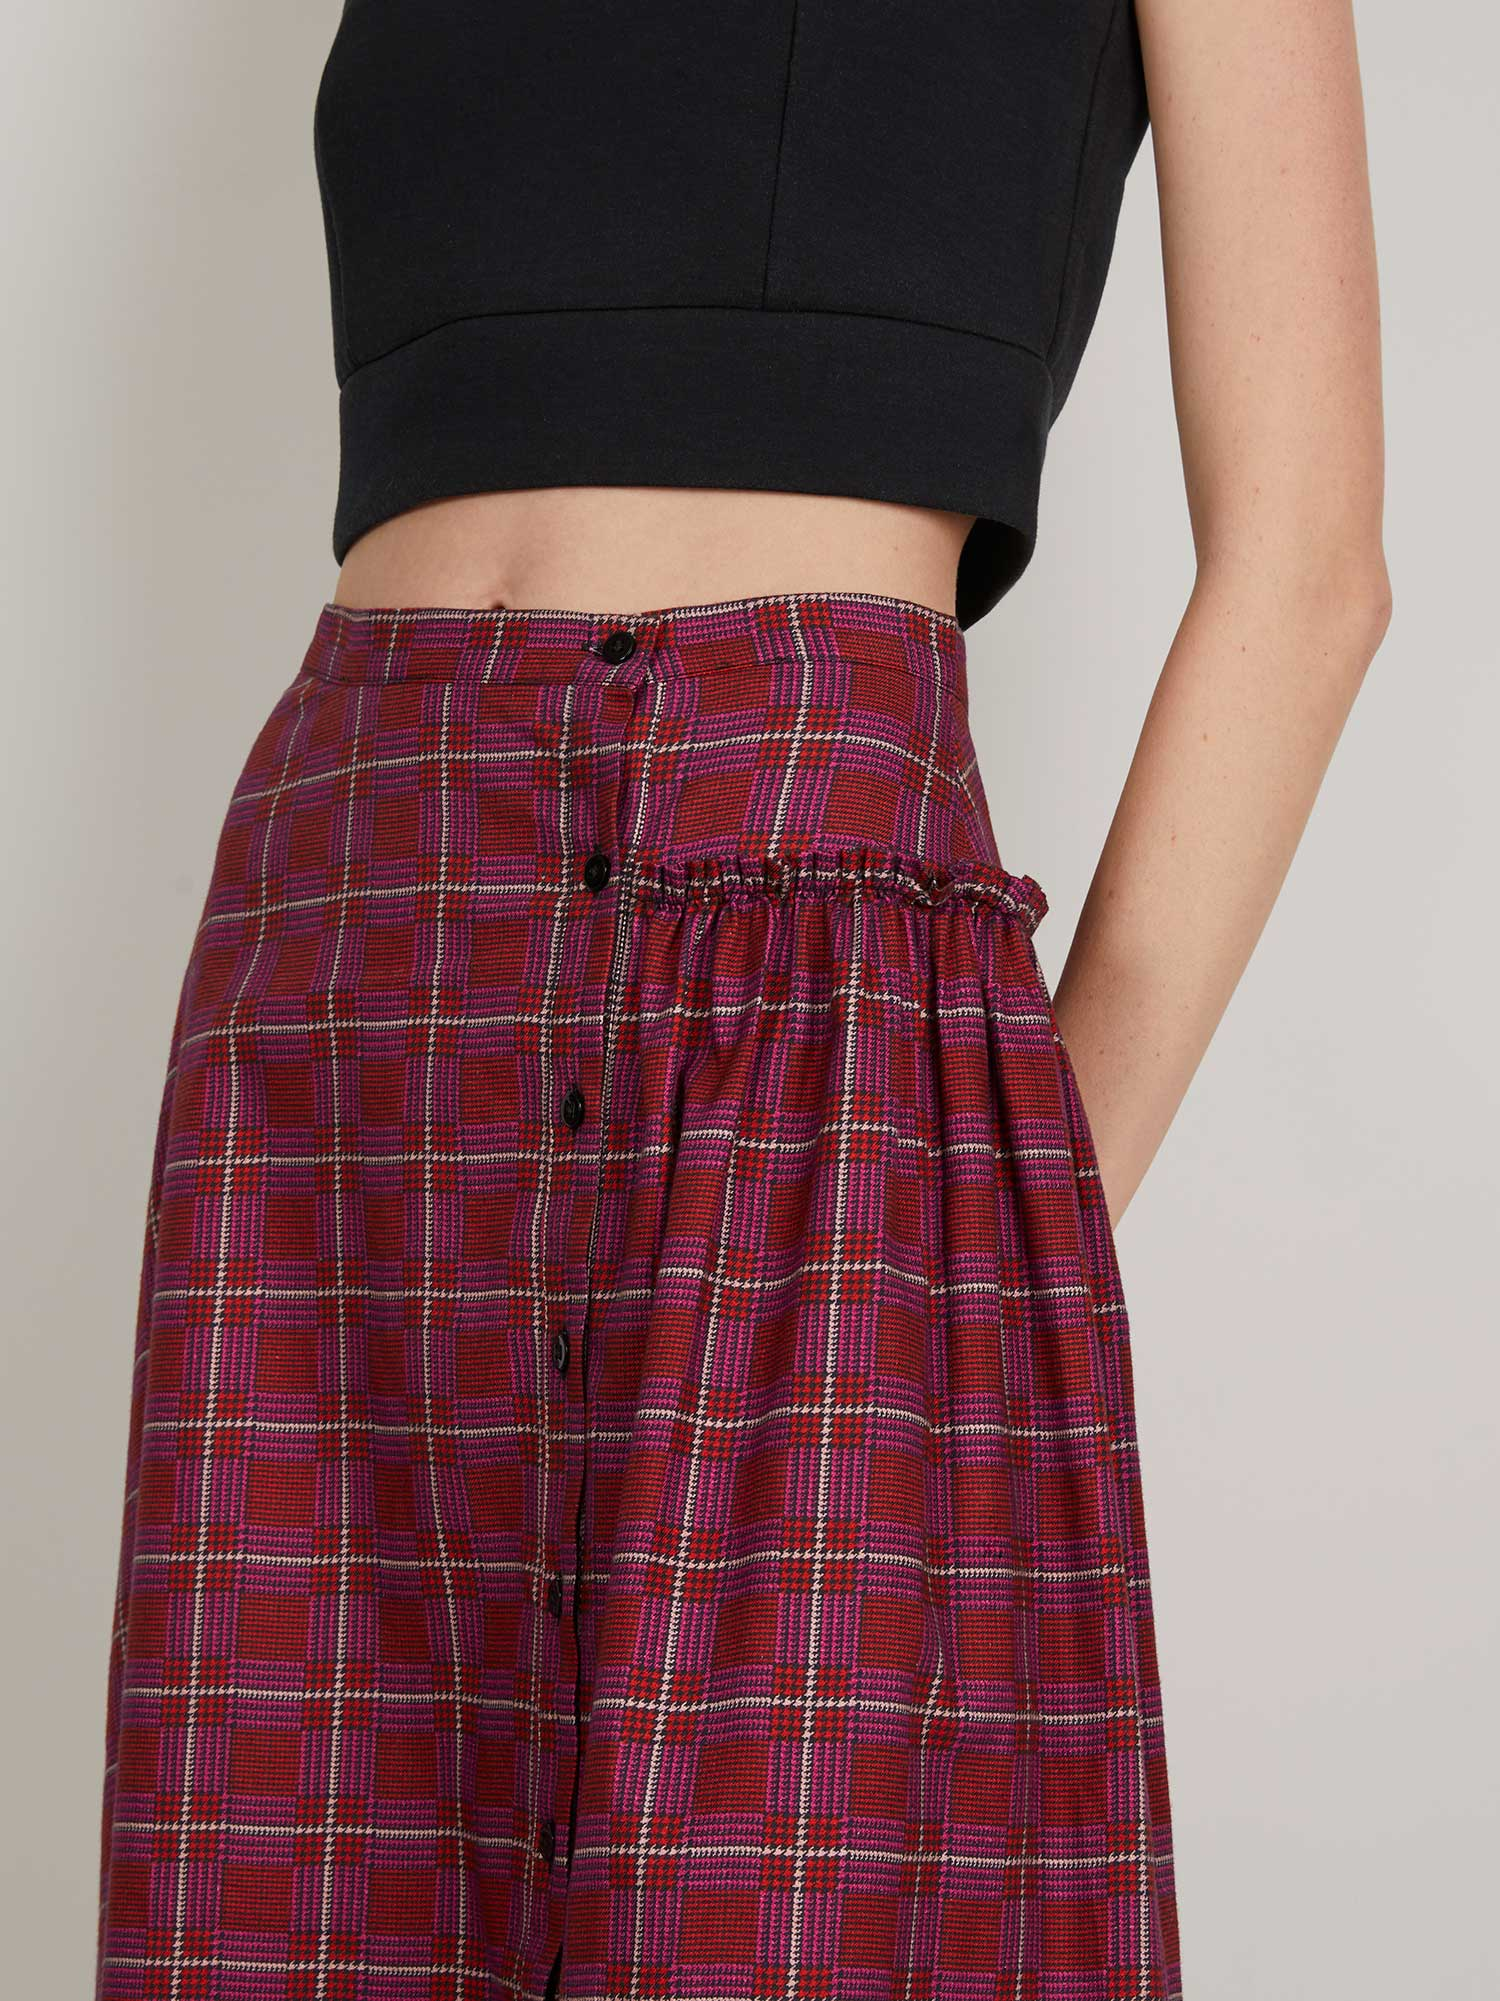 Dorothy Skirt in red plaid is an off-center, button-front full skirt with a fitted waist, asymmetrical gathering and dropped hem.